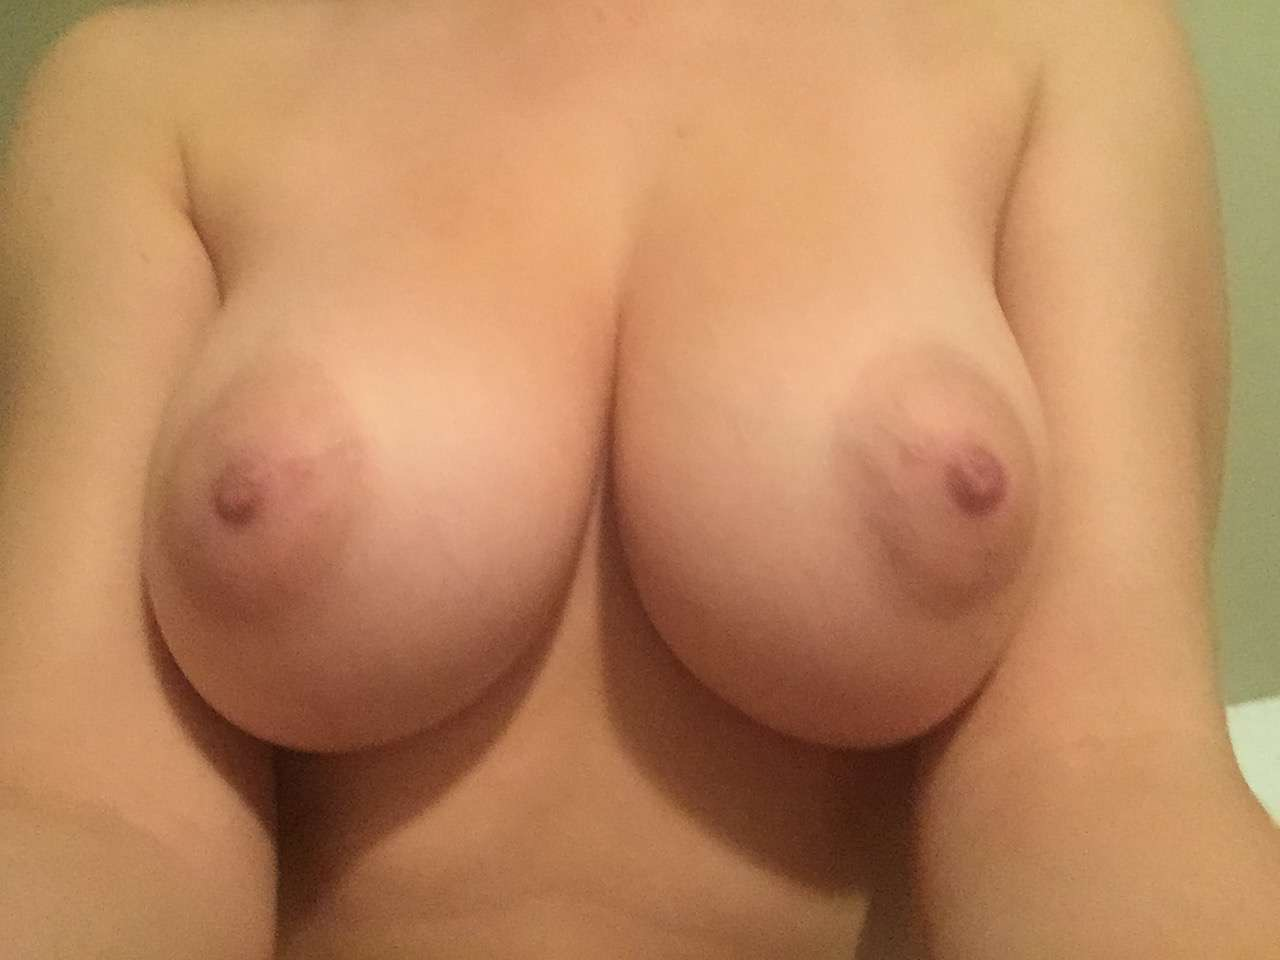 FULL VIDEO: Alanna Pearson Nude Onlyfans Leaked!